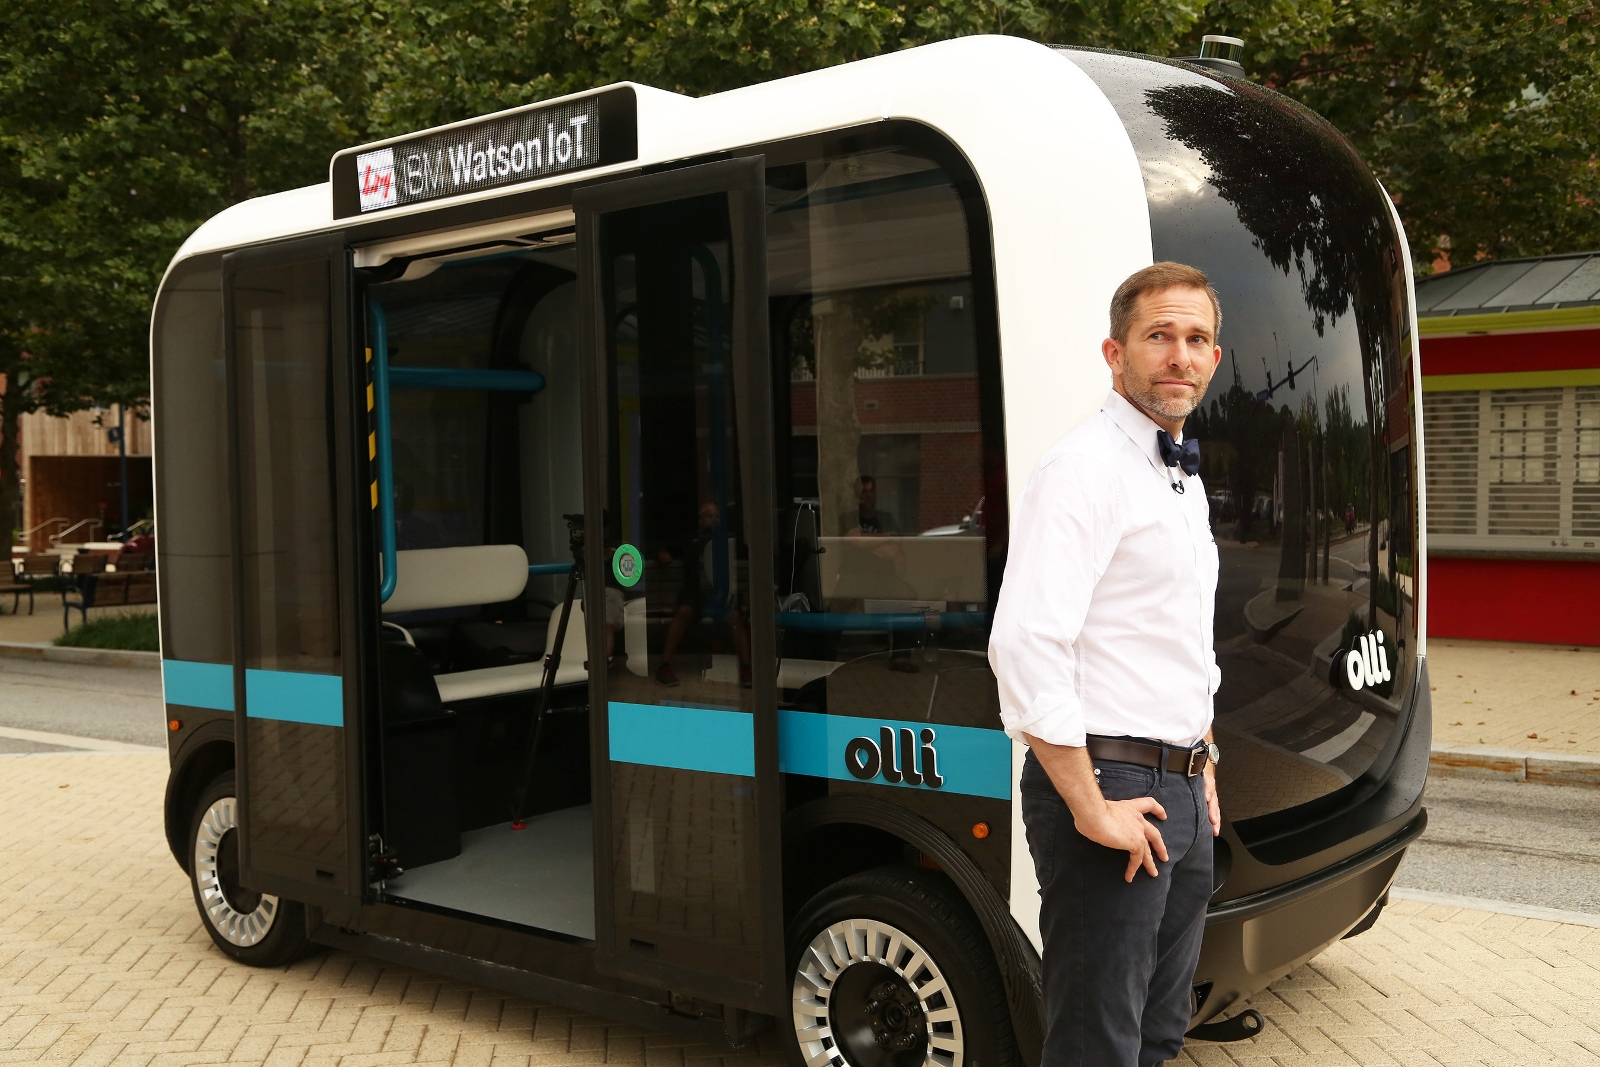 Local Motors CEO and co-founder John B. Rogers, Jr. introduces Olli, on Thurs., June 16, 2016. Olli integrates the advanced computing capabilities of IBM Watson to analyze and learn from high volumes of transportation data.